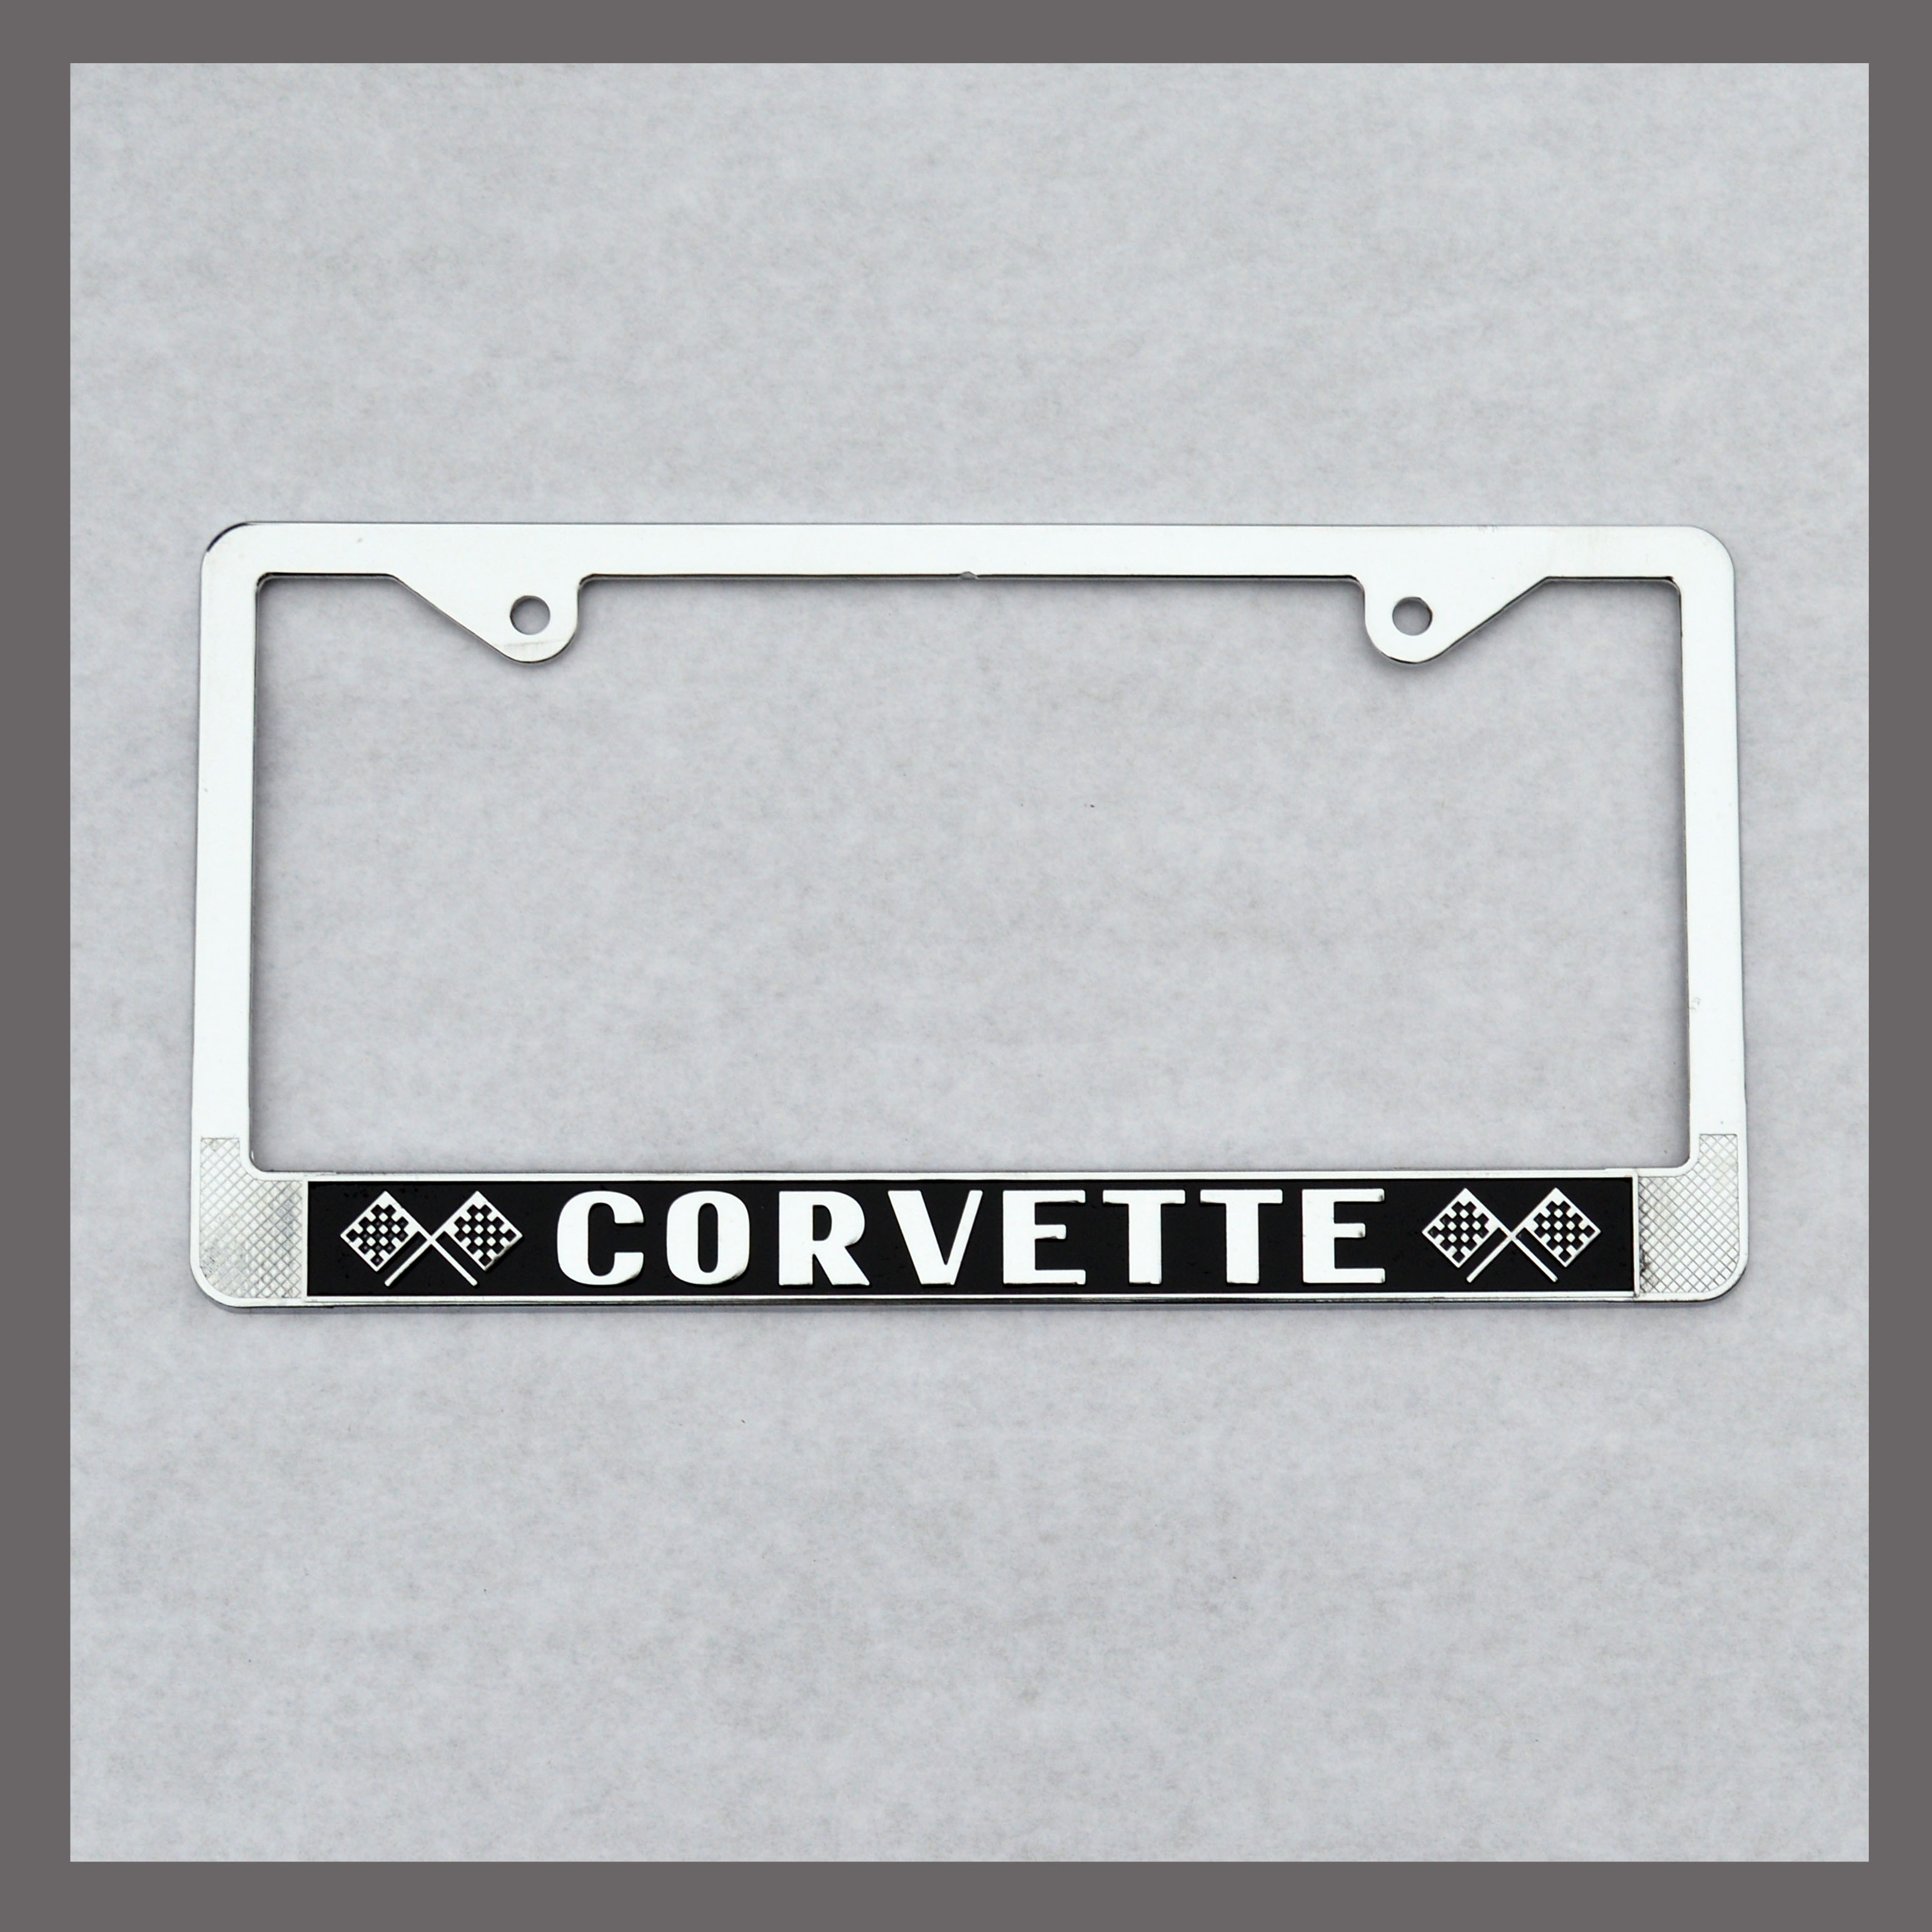 corvette license plate frame back to list